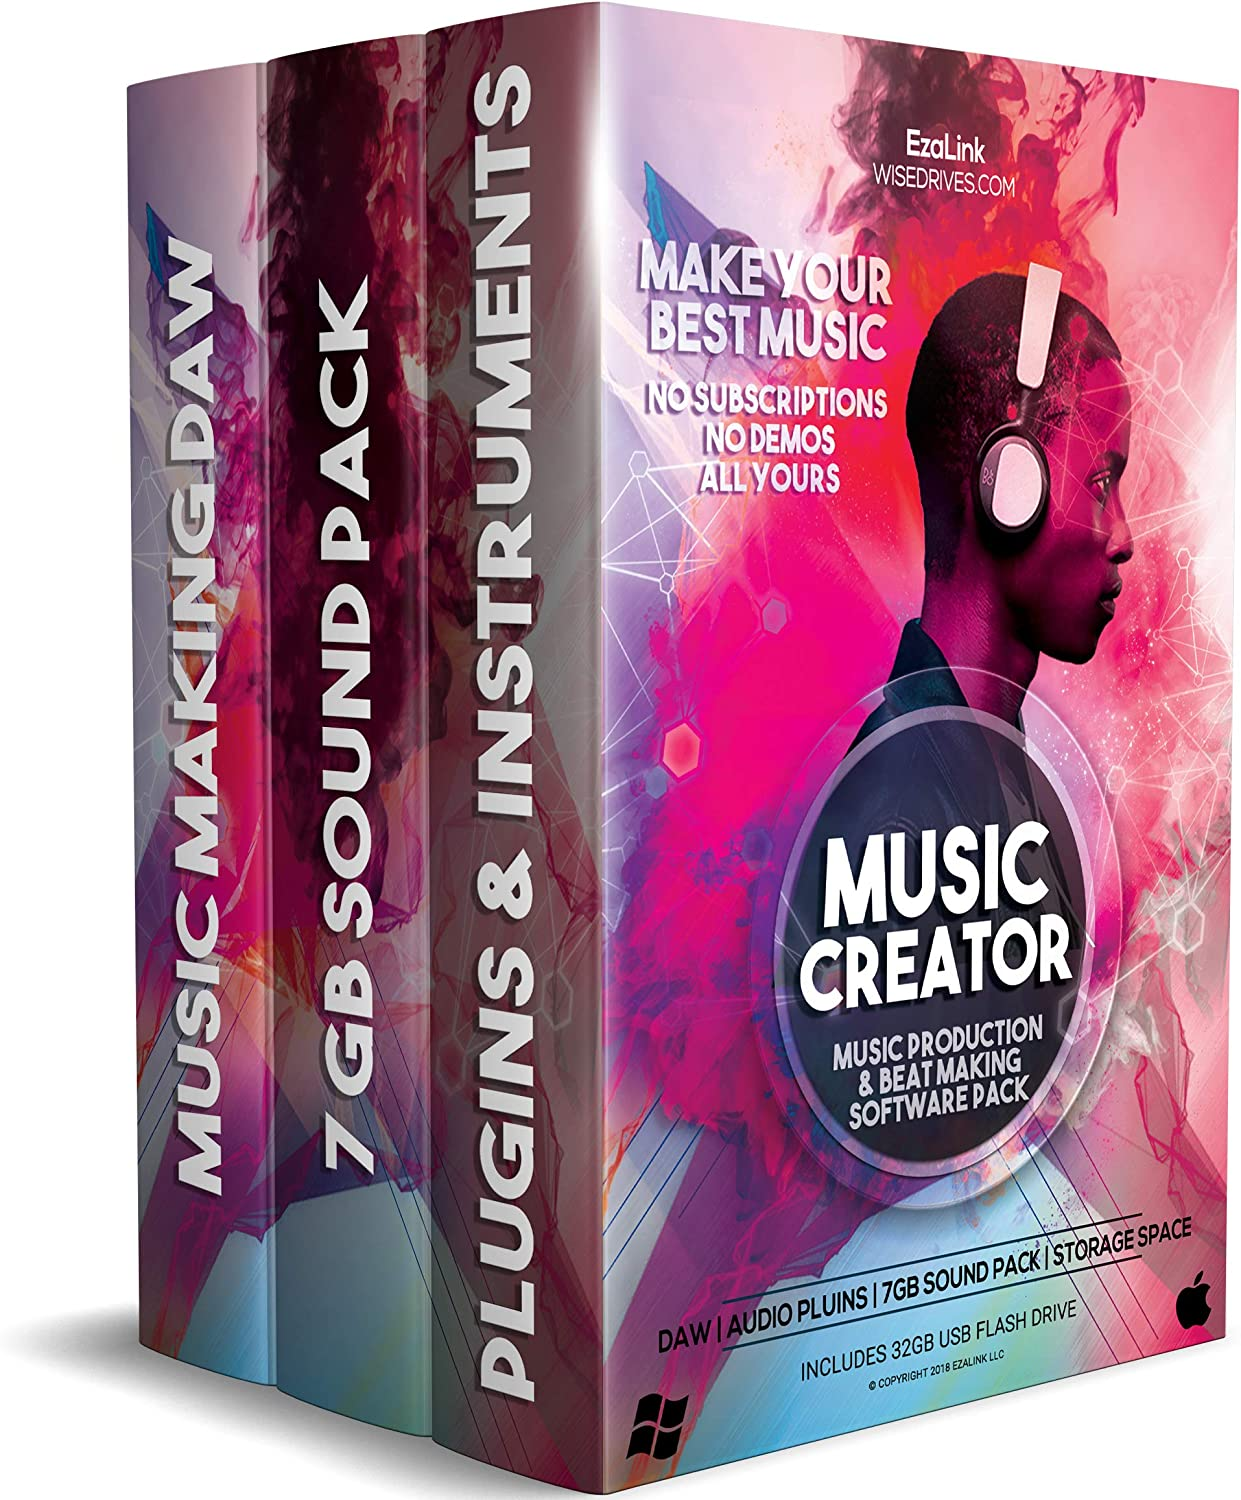 Music Editing Software for Recording Production Mixing & Beat Making Bundle - DAW, Audio Plugins, 7Gb Sound Pack on 32Gb USB (Windows PC & Mac)